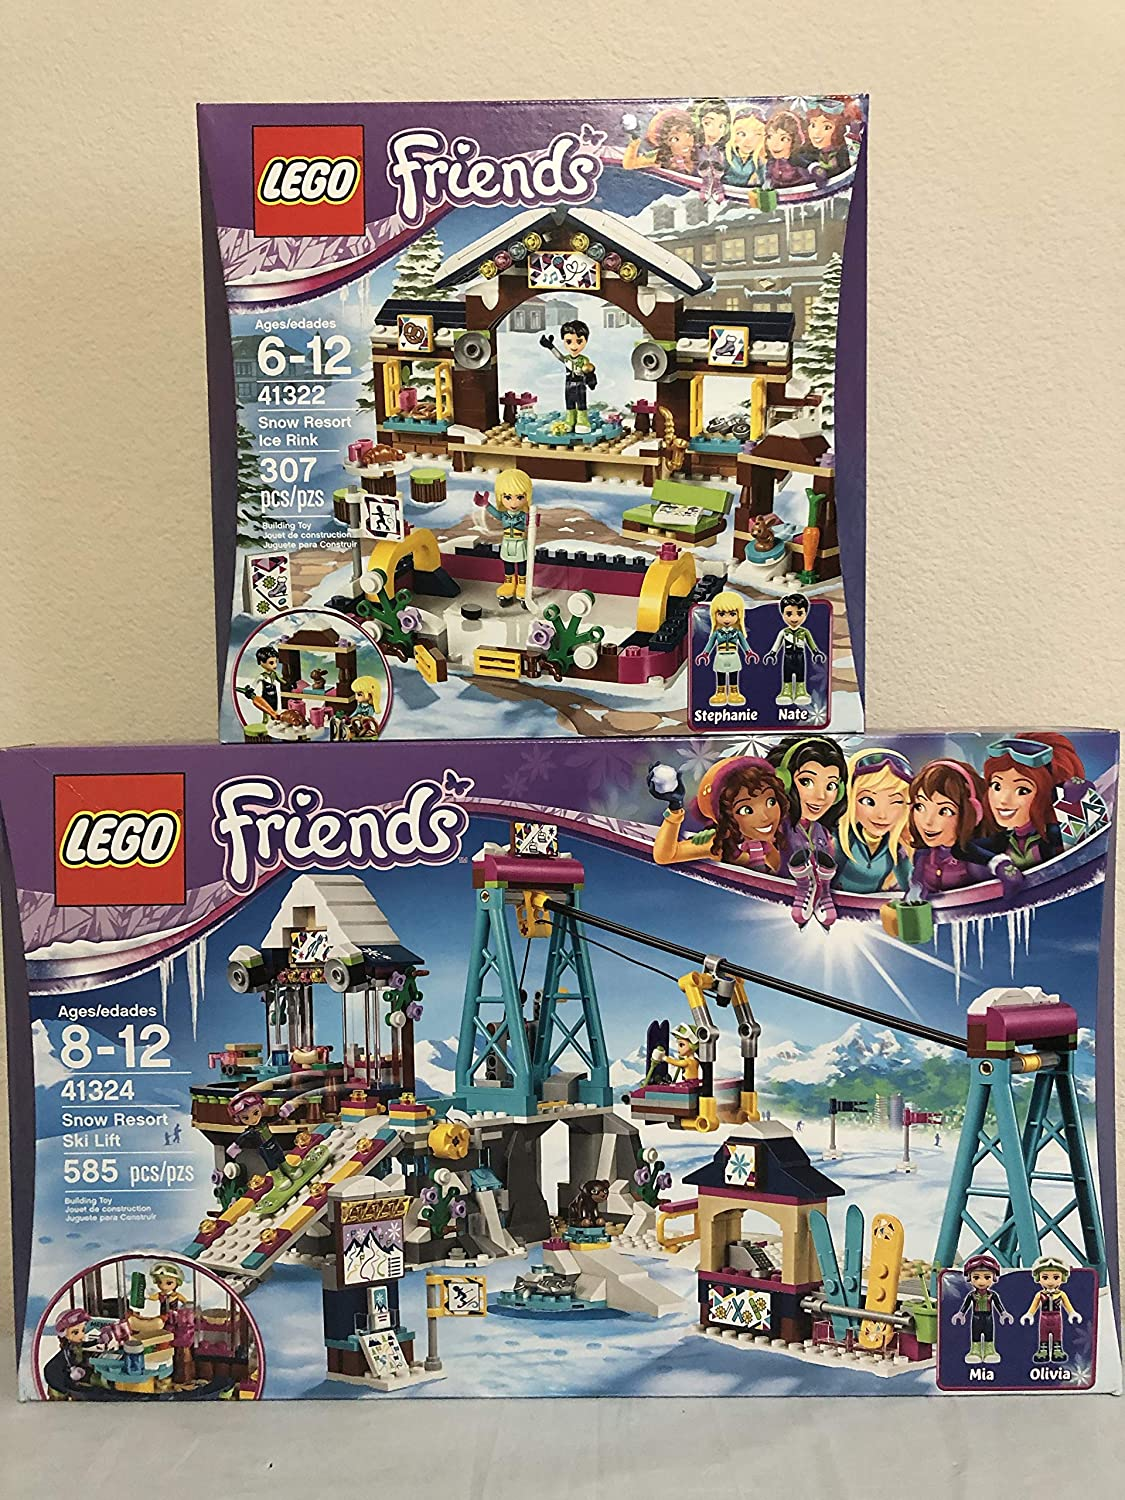 Lego Friends Snow Resort Ski Lift Bundled with Lego Friends Snow Resort Ice Rink